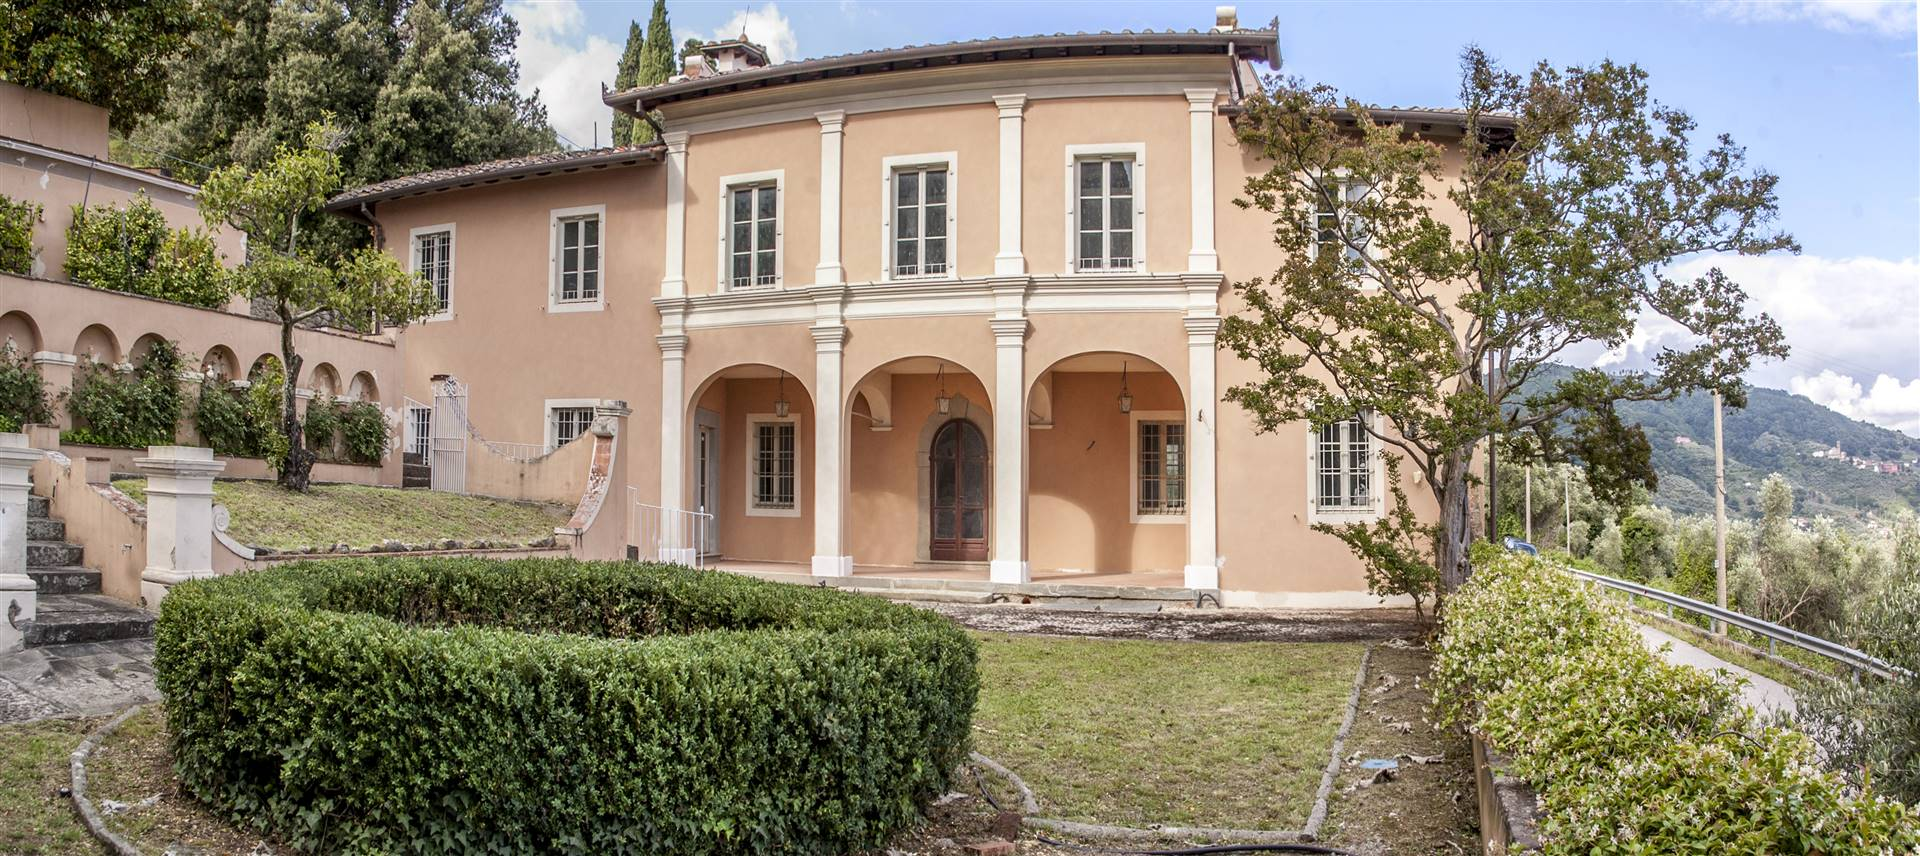 PESCIA, nested in the tranquil Tuscan hills between the quaint cities of Lucca and Florence this bespoke 18th century palace is ready for your